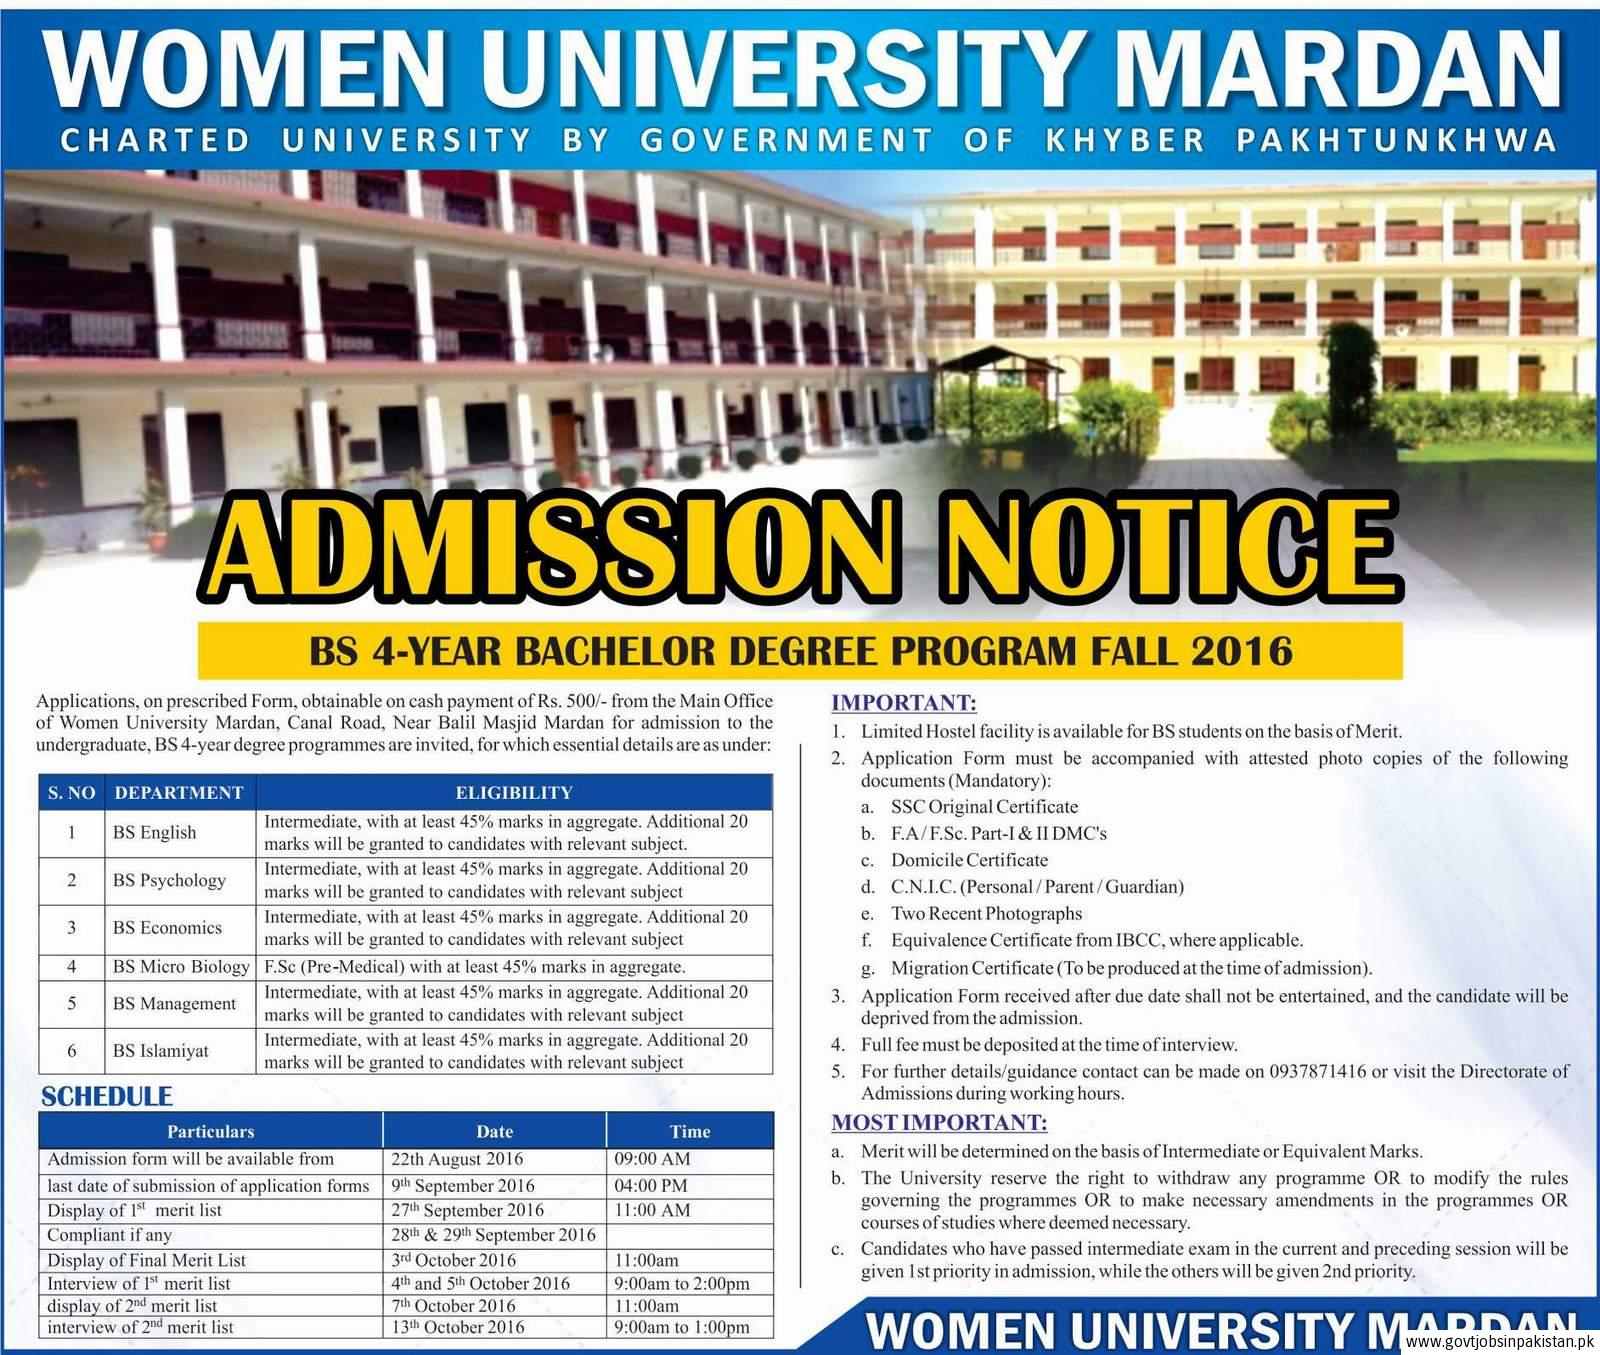 Women University Mardan admisssions fall spring